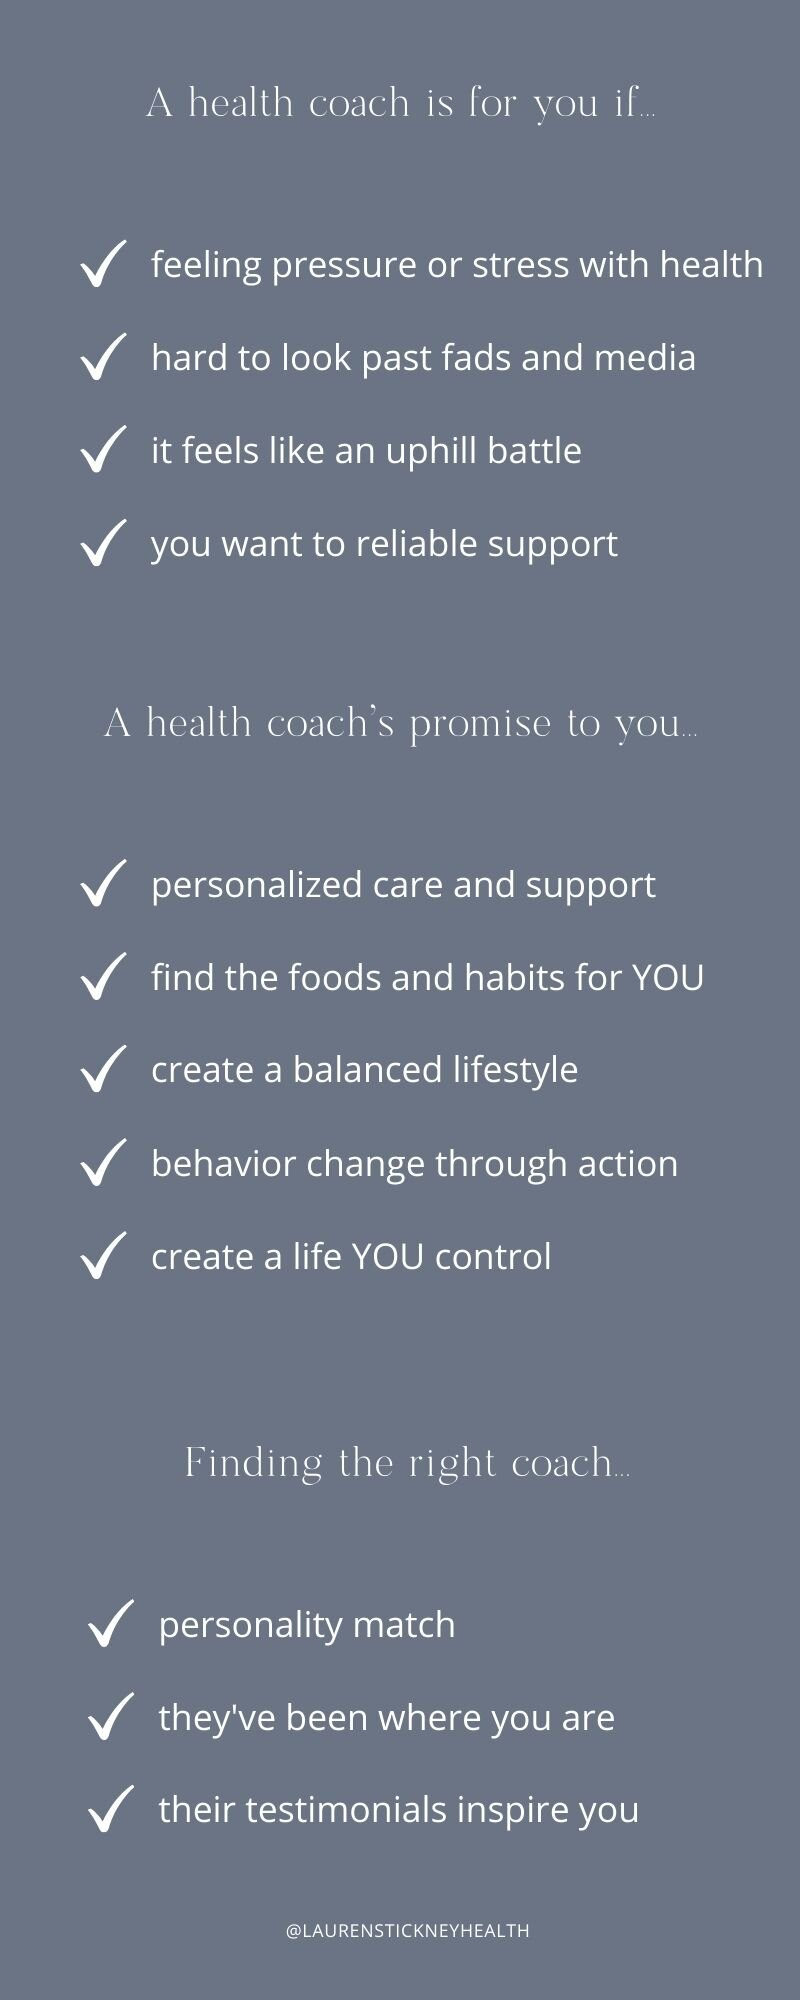 Is Health Coaching Legit 5 Reasons To Hire A Health Coach Lauren Stickney Health